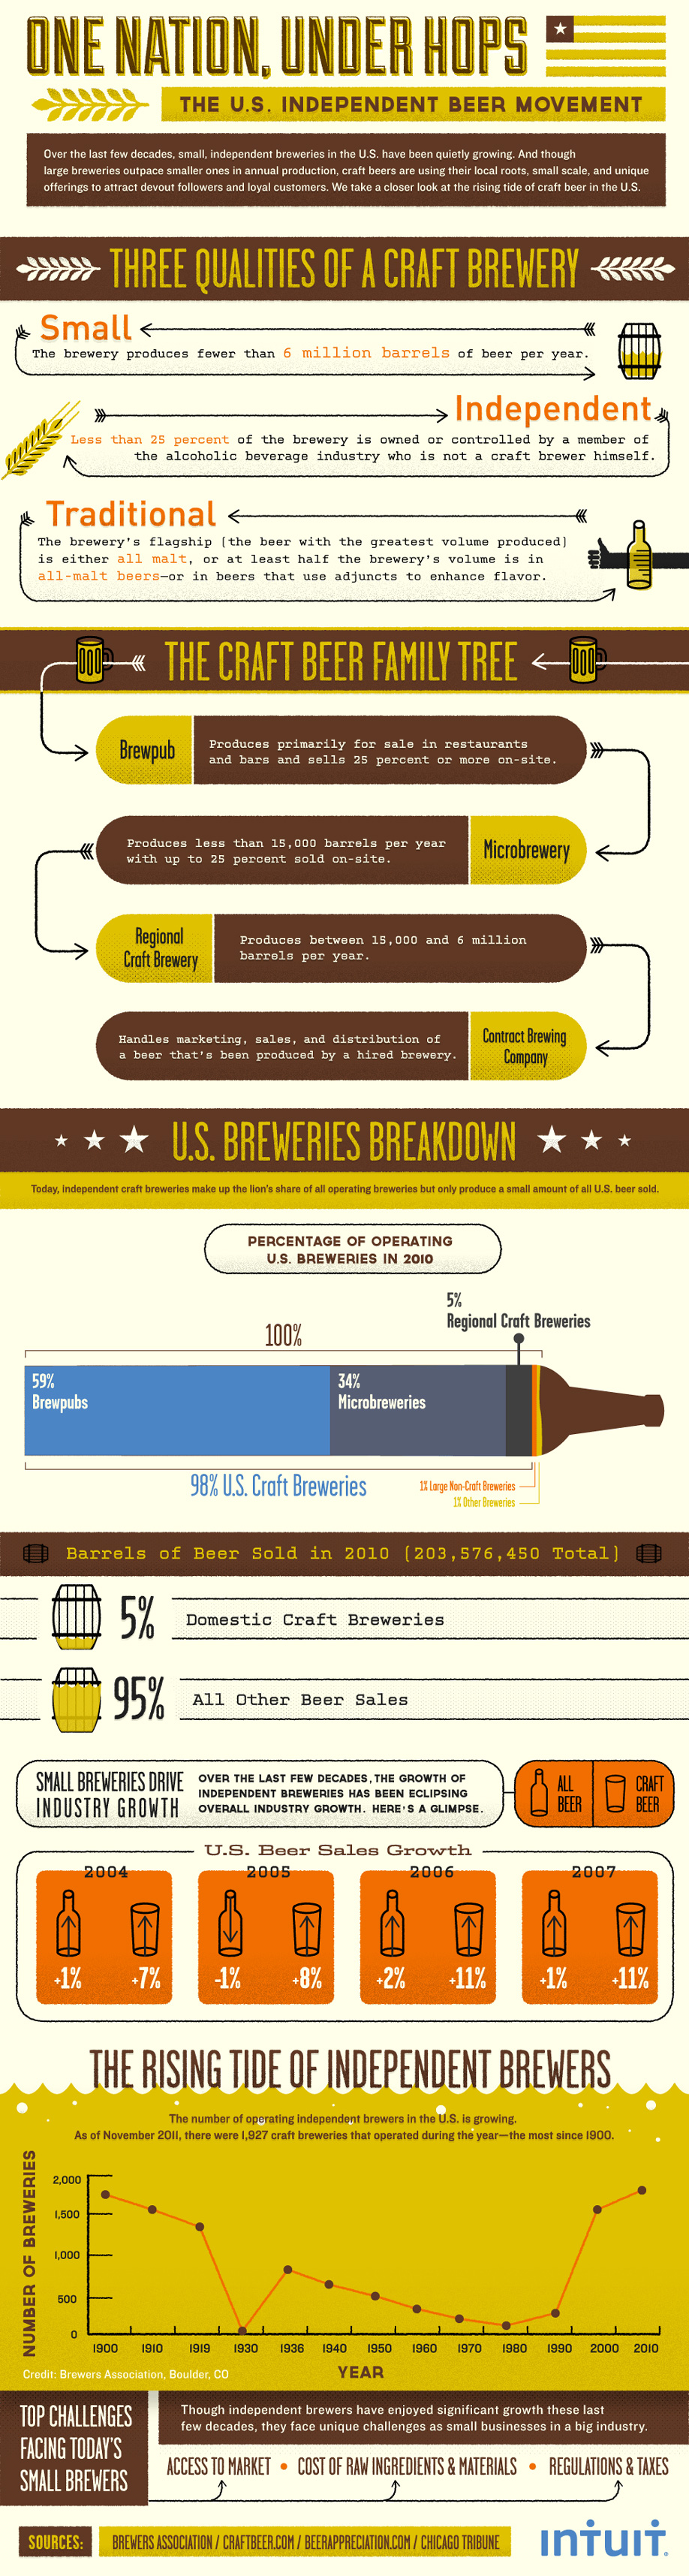 Infographic: How Indie Brewers are Outpacing Beer Industry Growth